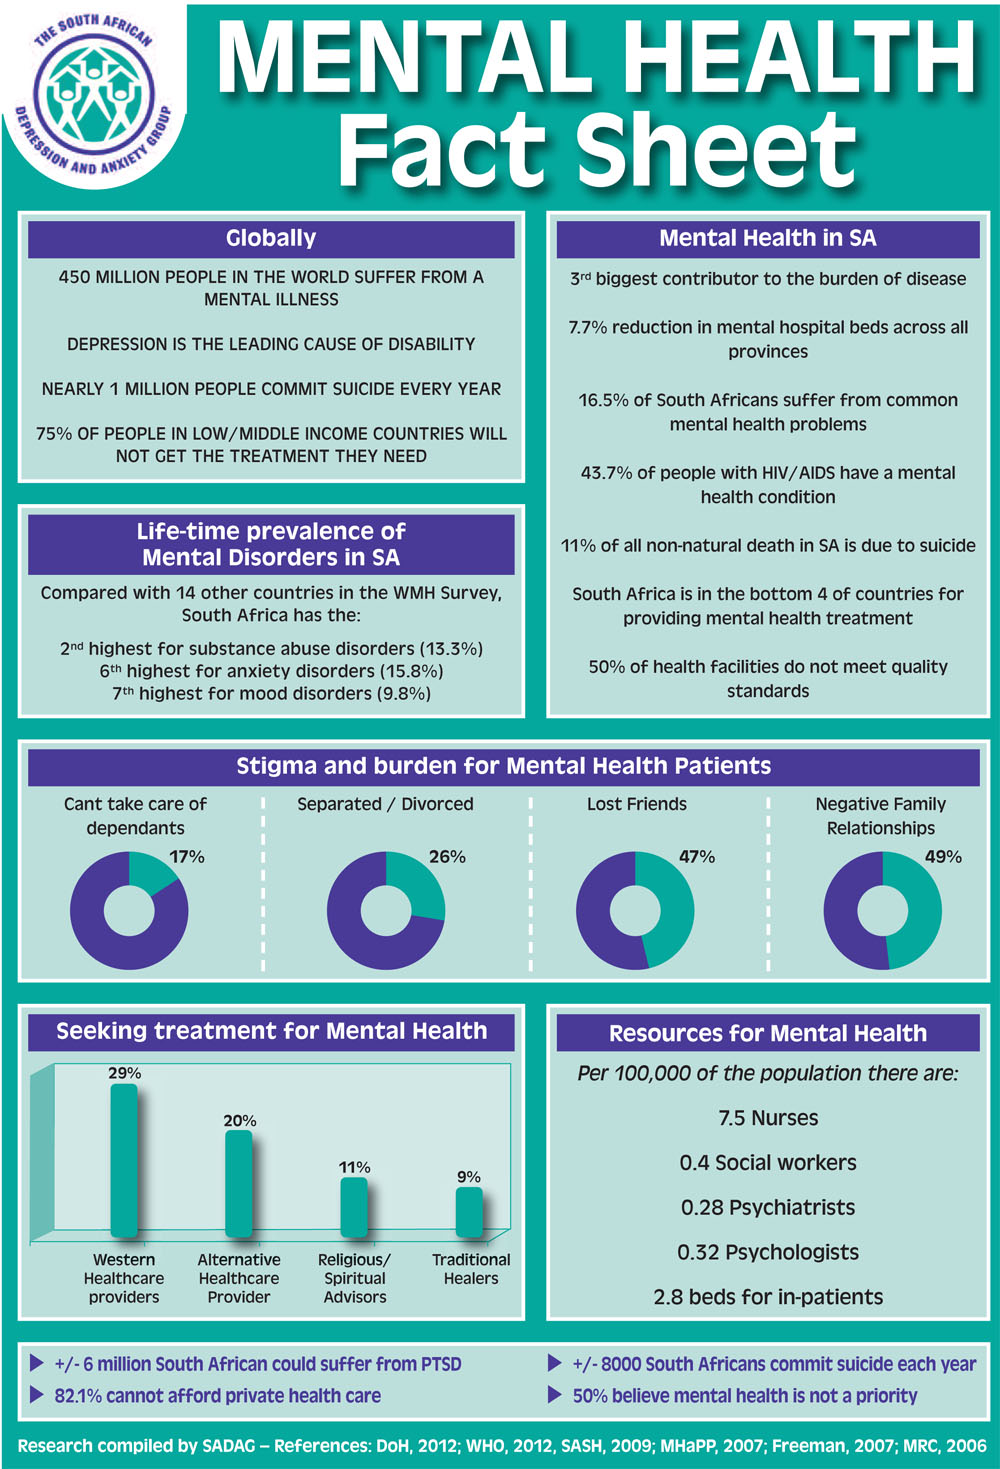 Mental Health Fact Sheet 2014